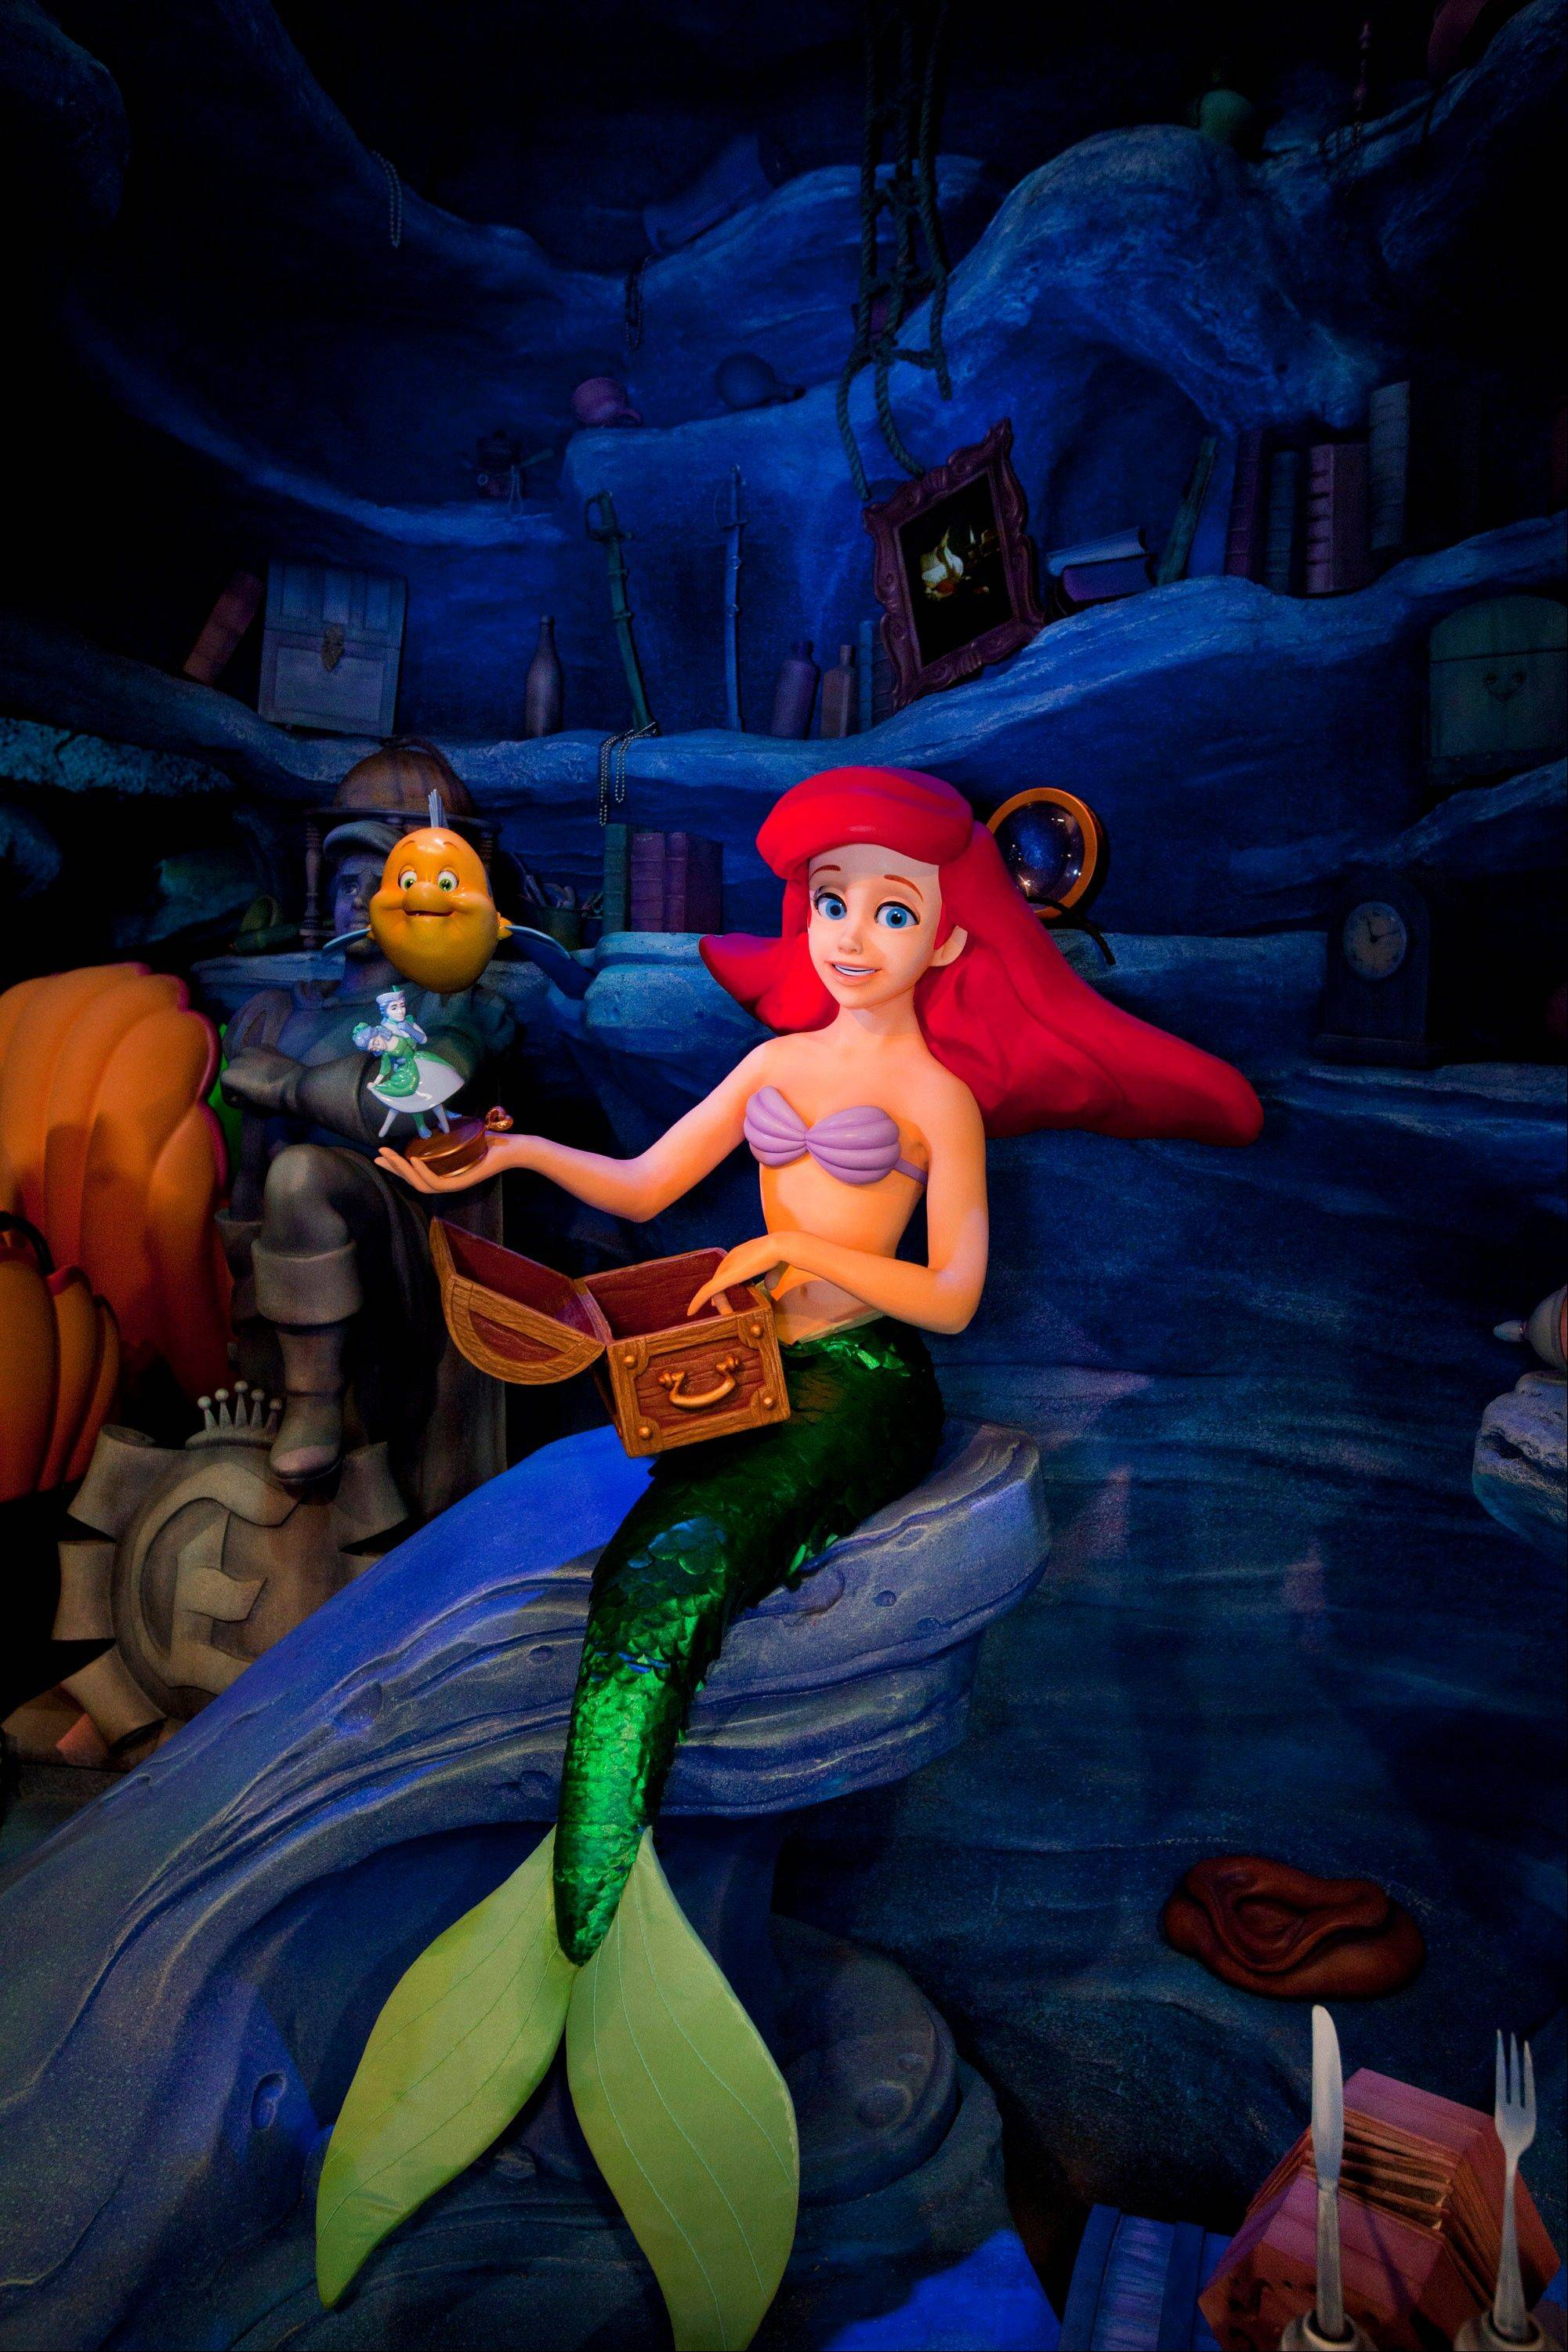 People with disabilities will no longer go straight to the front of lines for rides like The Little Mermaid: Ariel's Undersea Adventure at Disneyland and Walt Disney World after growing abuse of the system, park officials said Monday.